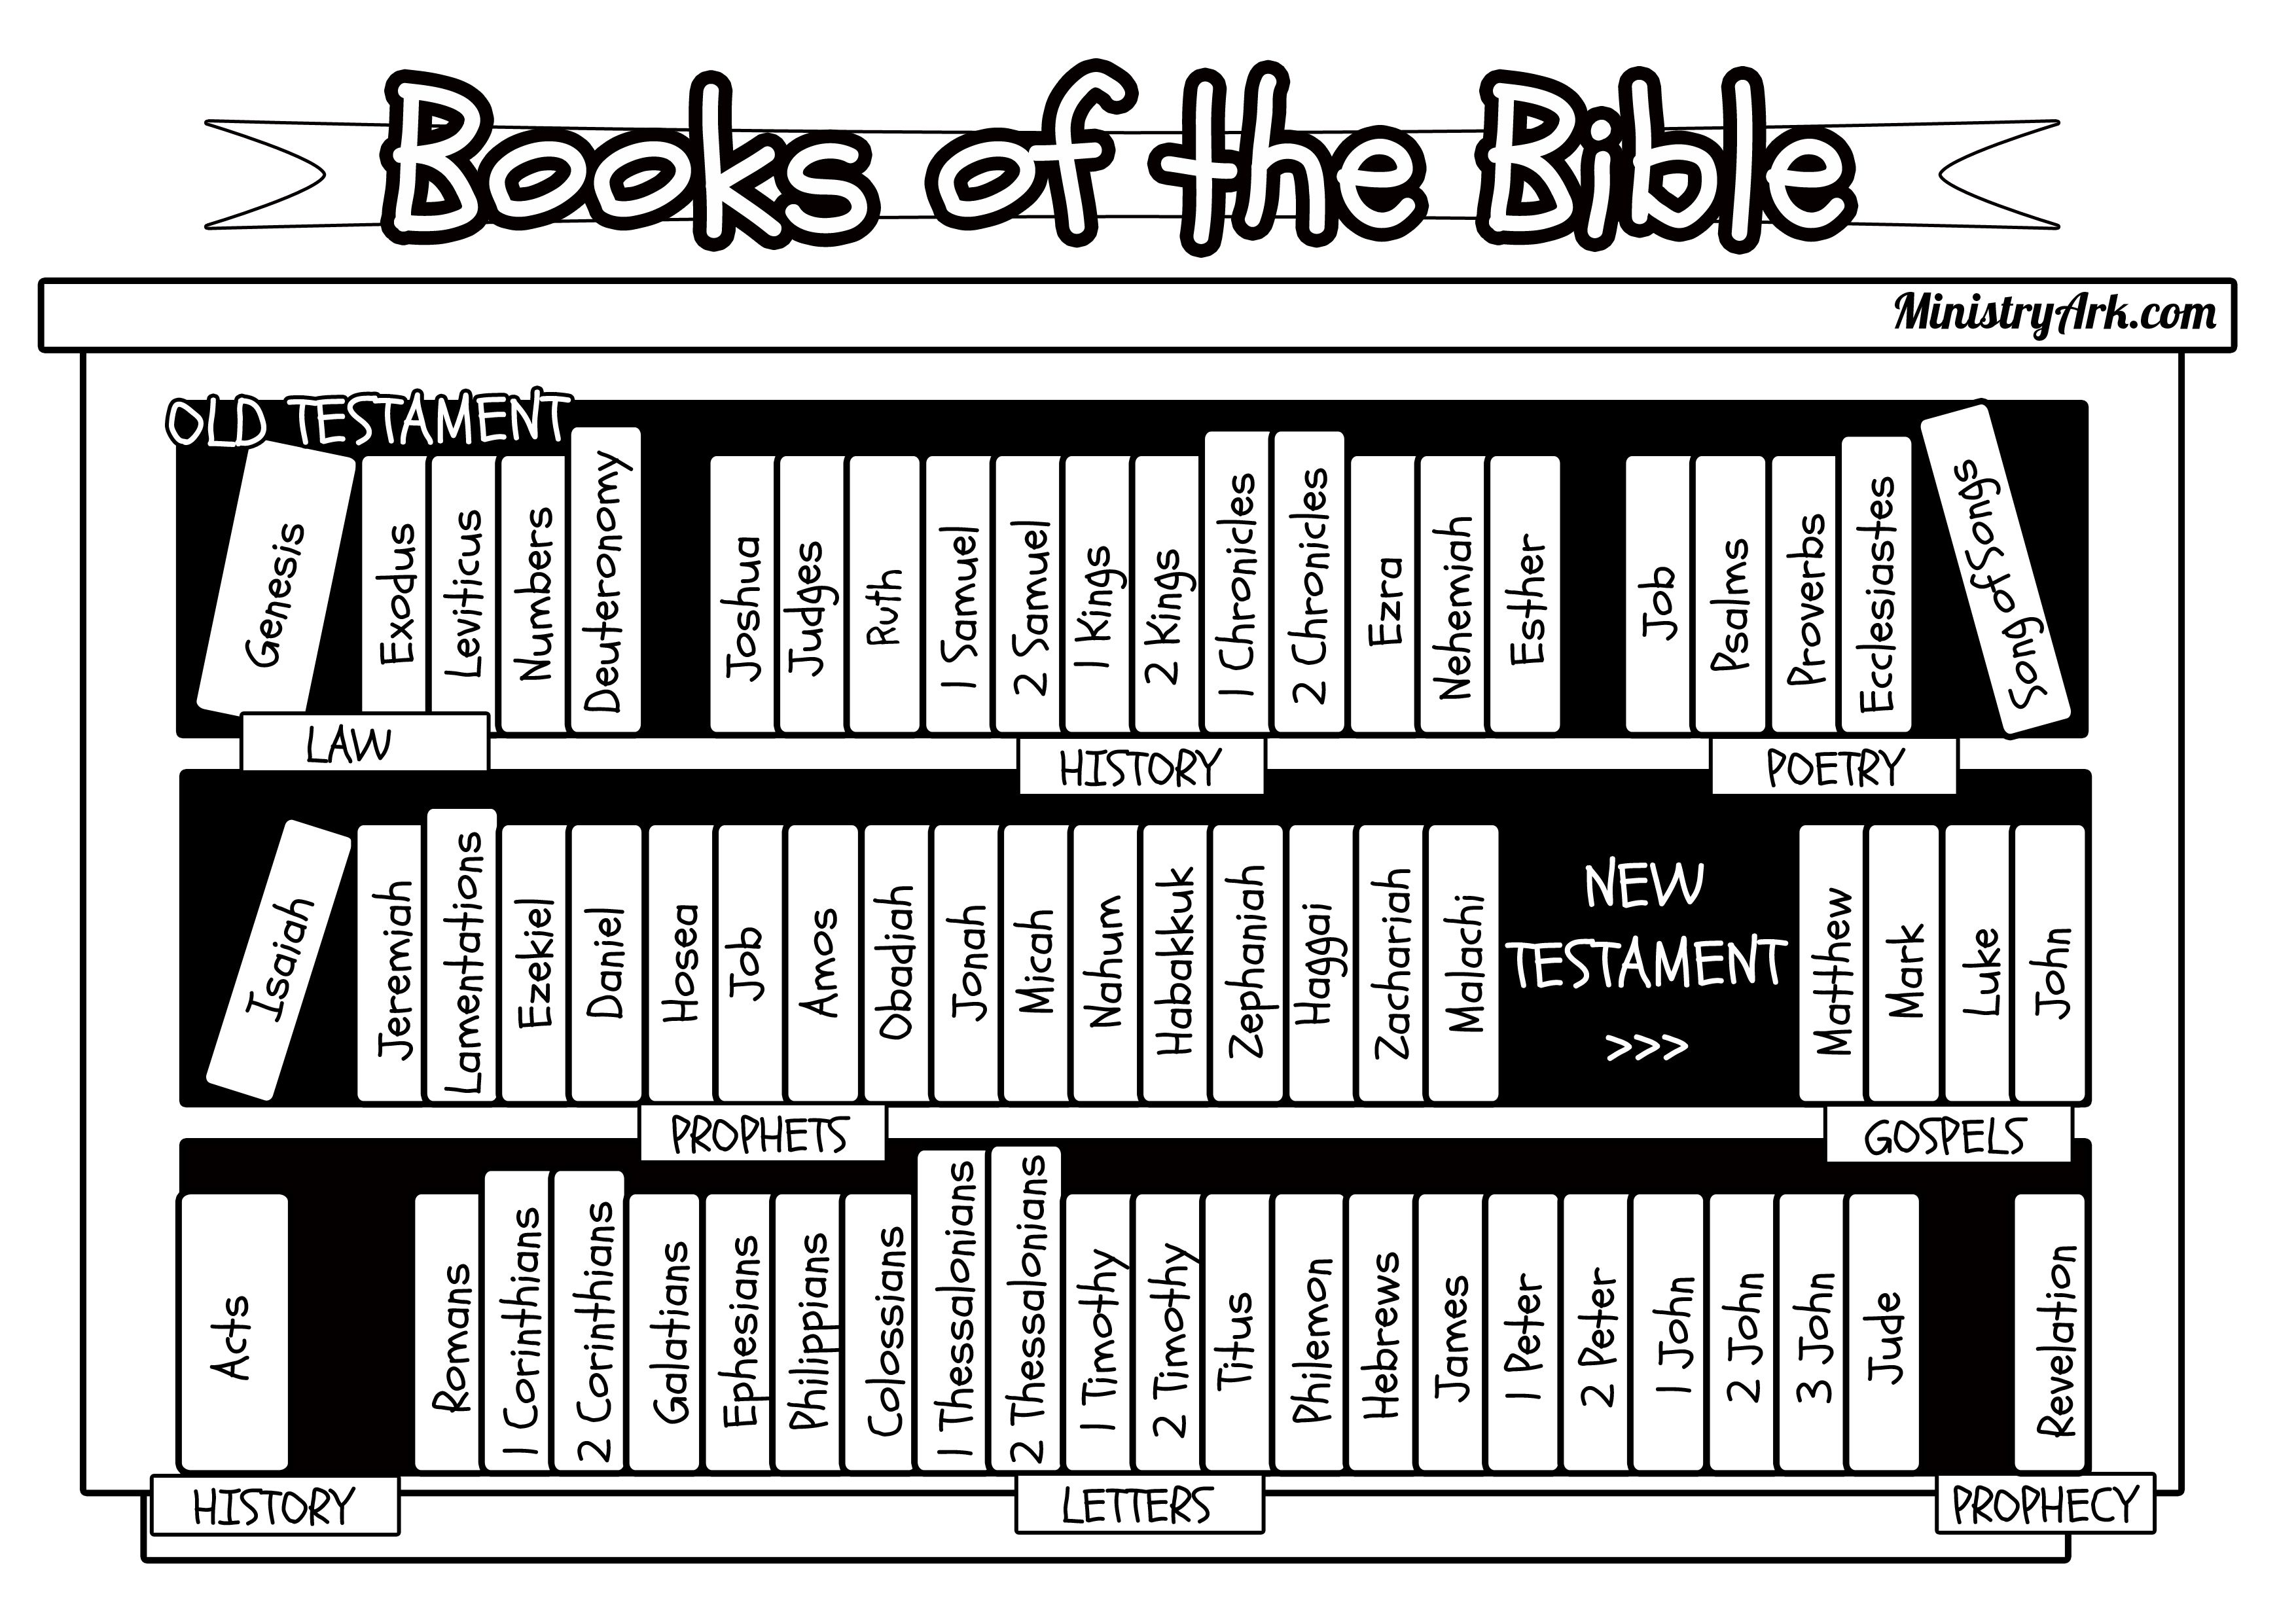 Books Of The Bible Bookcase Jpg 3508 2480 Bible Printables Books Of The Bible Bible Coloring